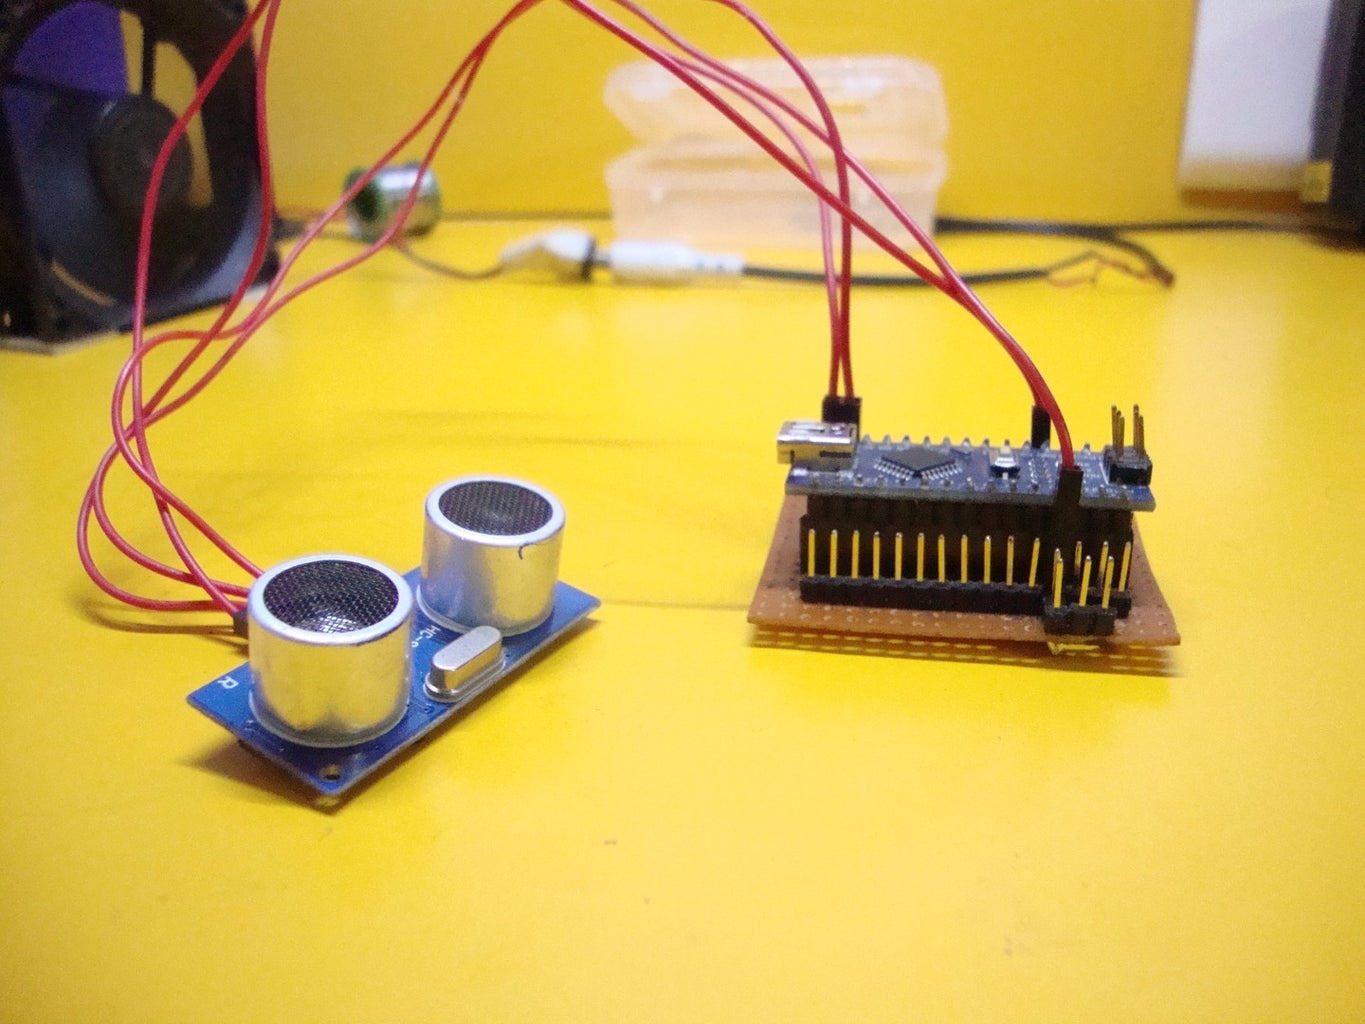 Making the Transmitter: Connect the Ultrasonic Tester